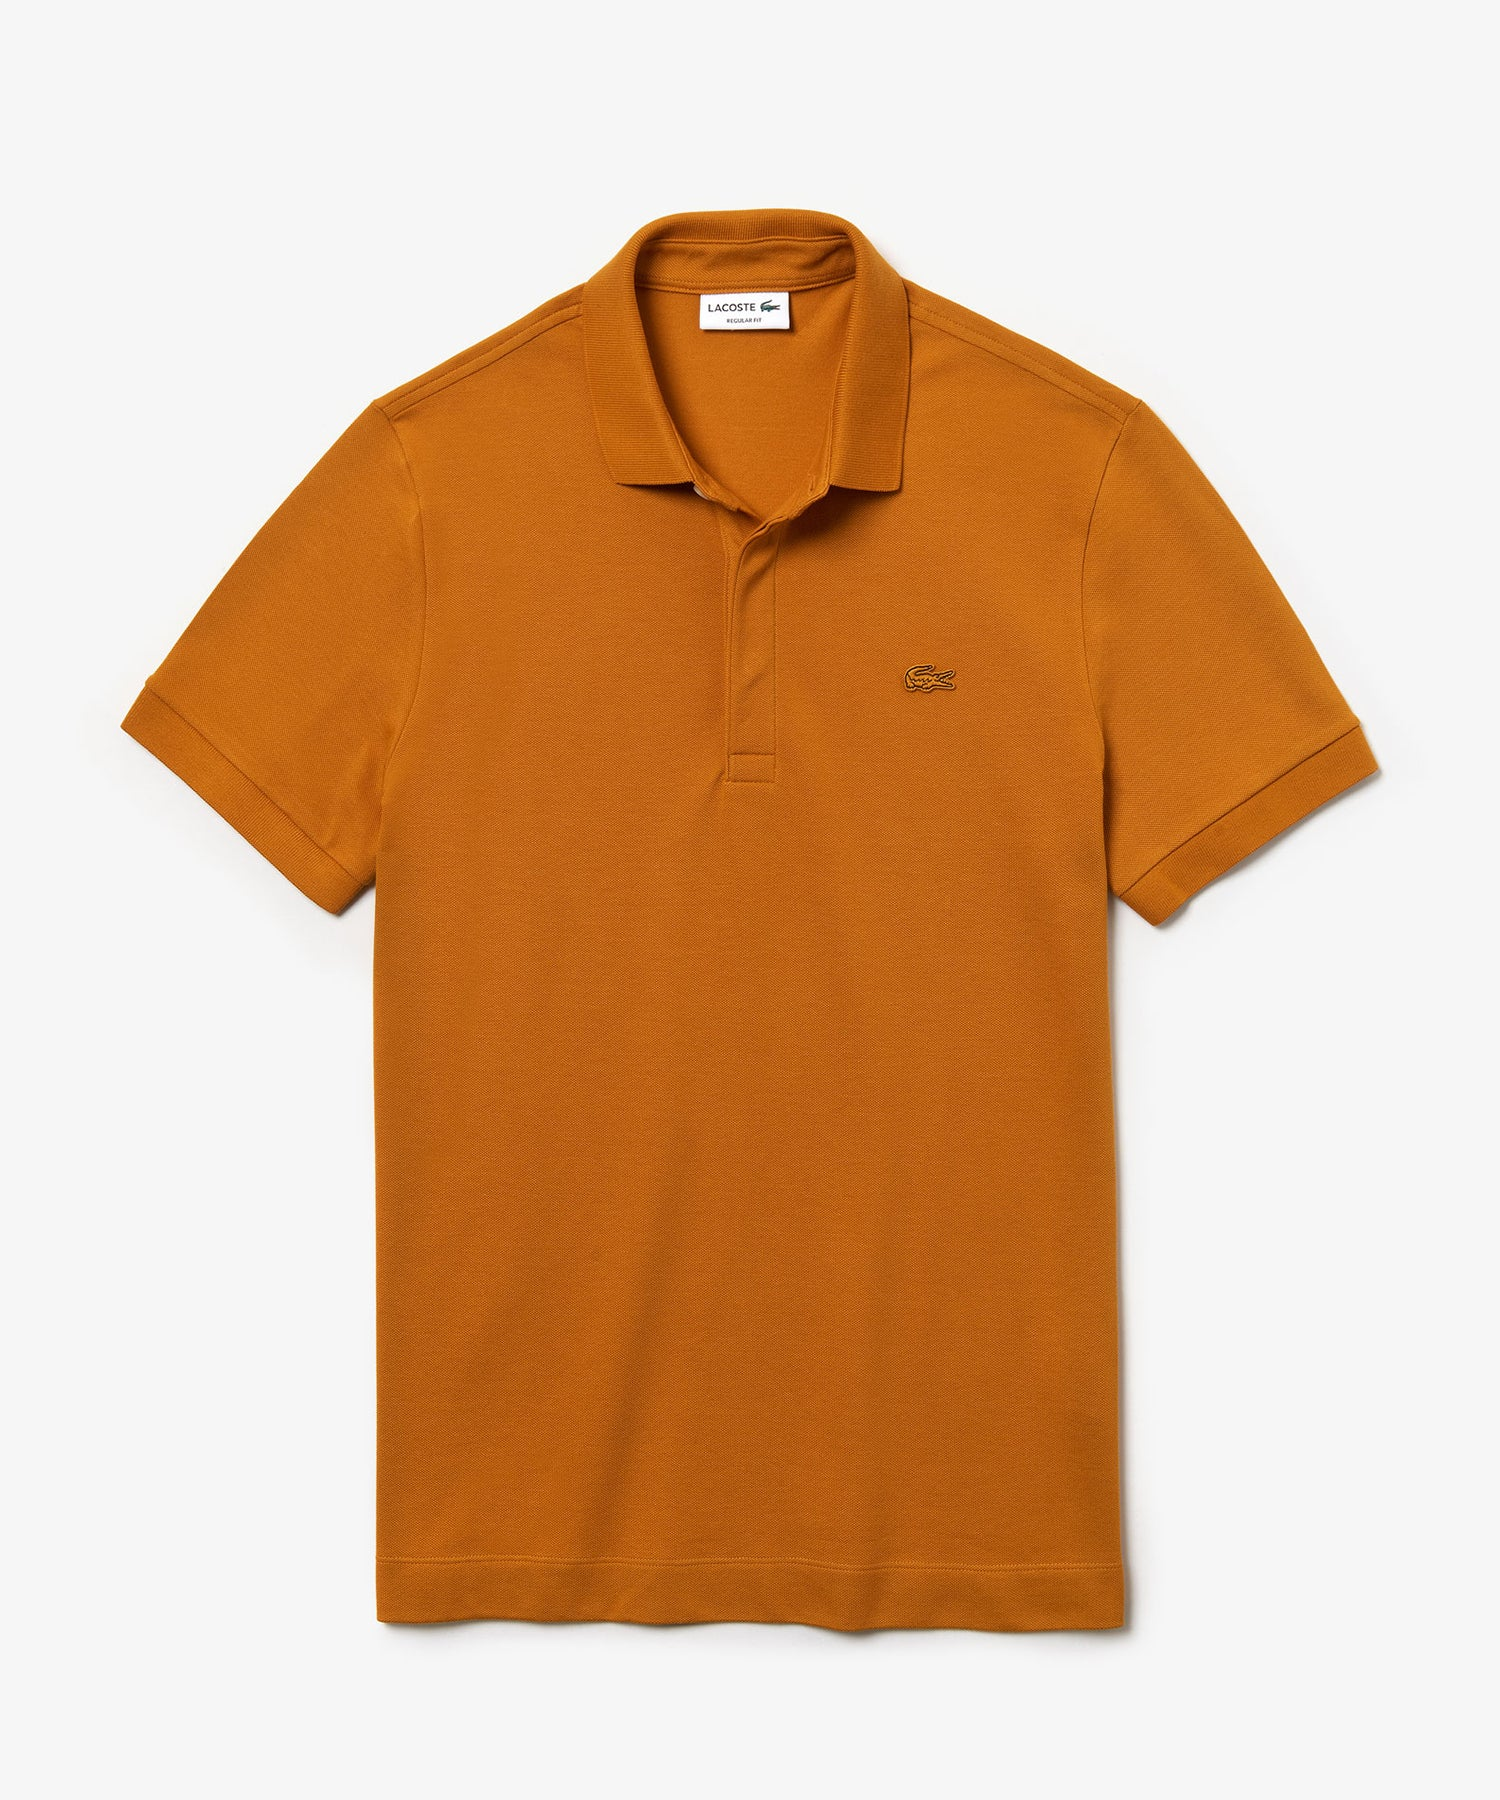 Lacoste Regular Fit Stretch Cotton Paris Polo in Orange